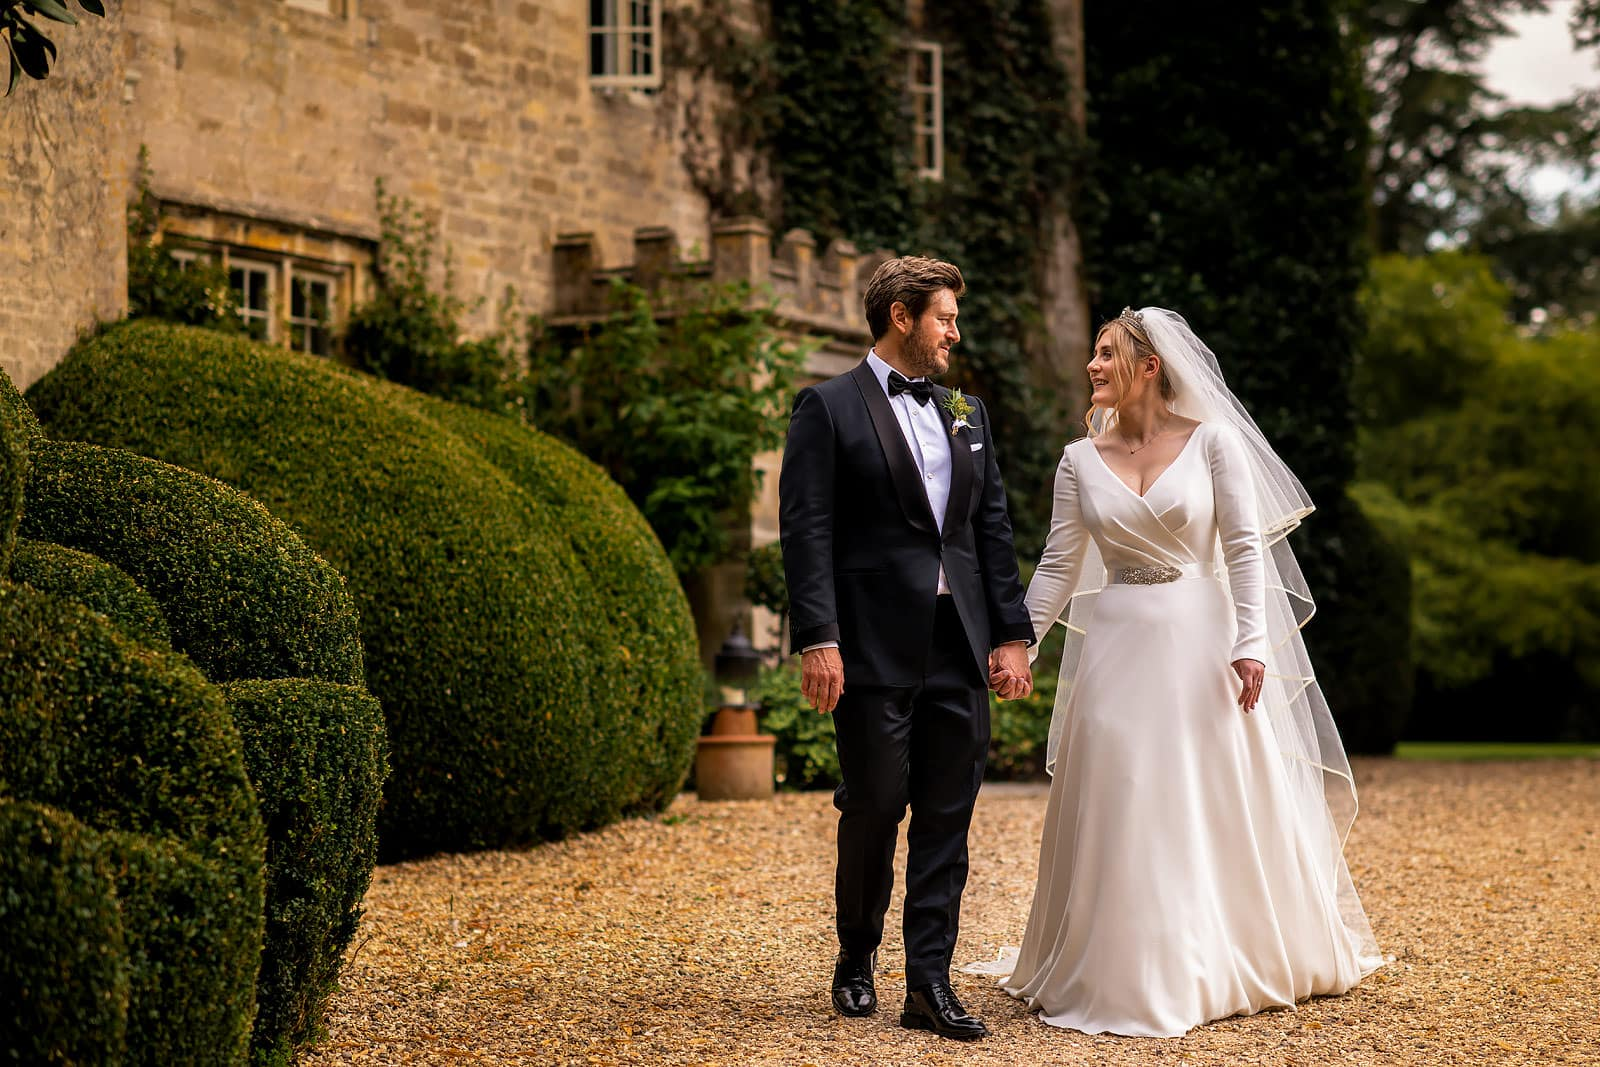 Bride and groom walking together at Barnsley House